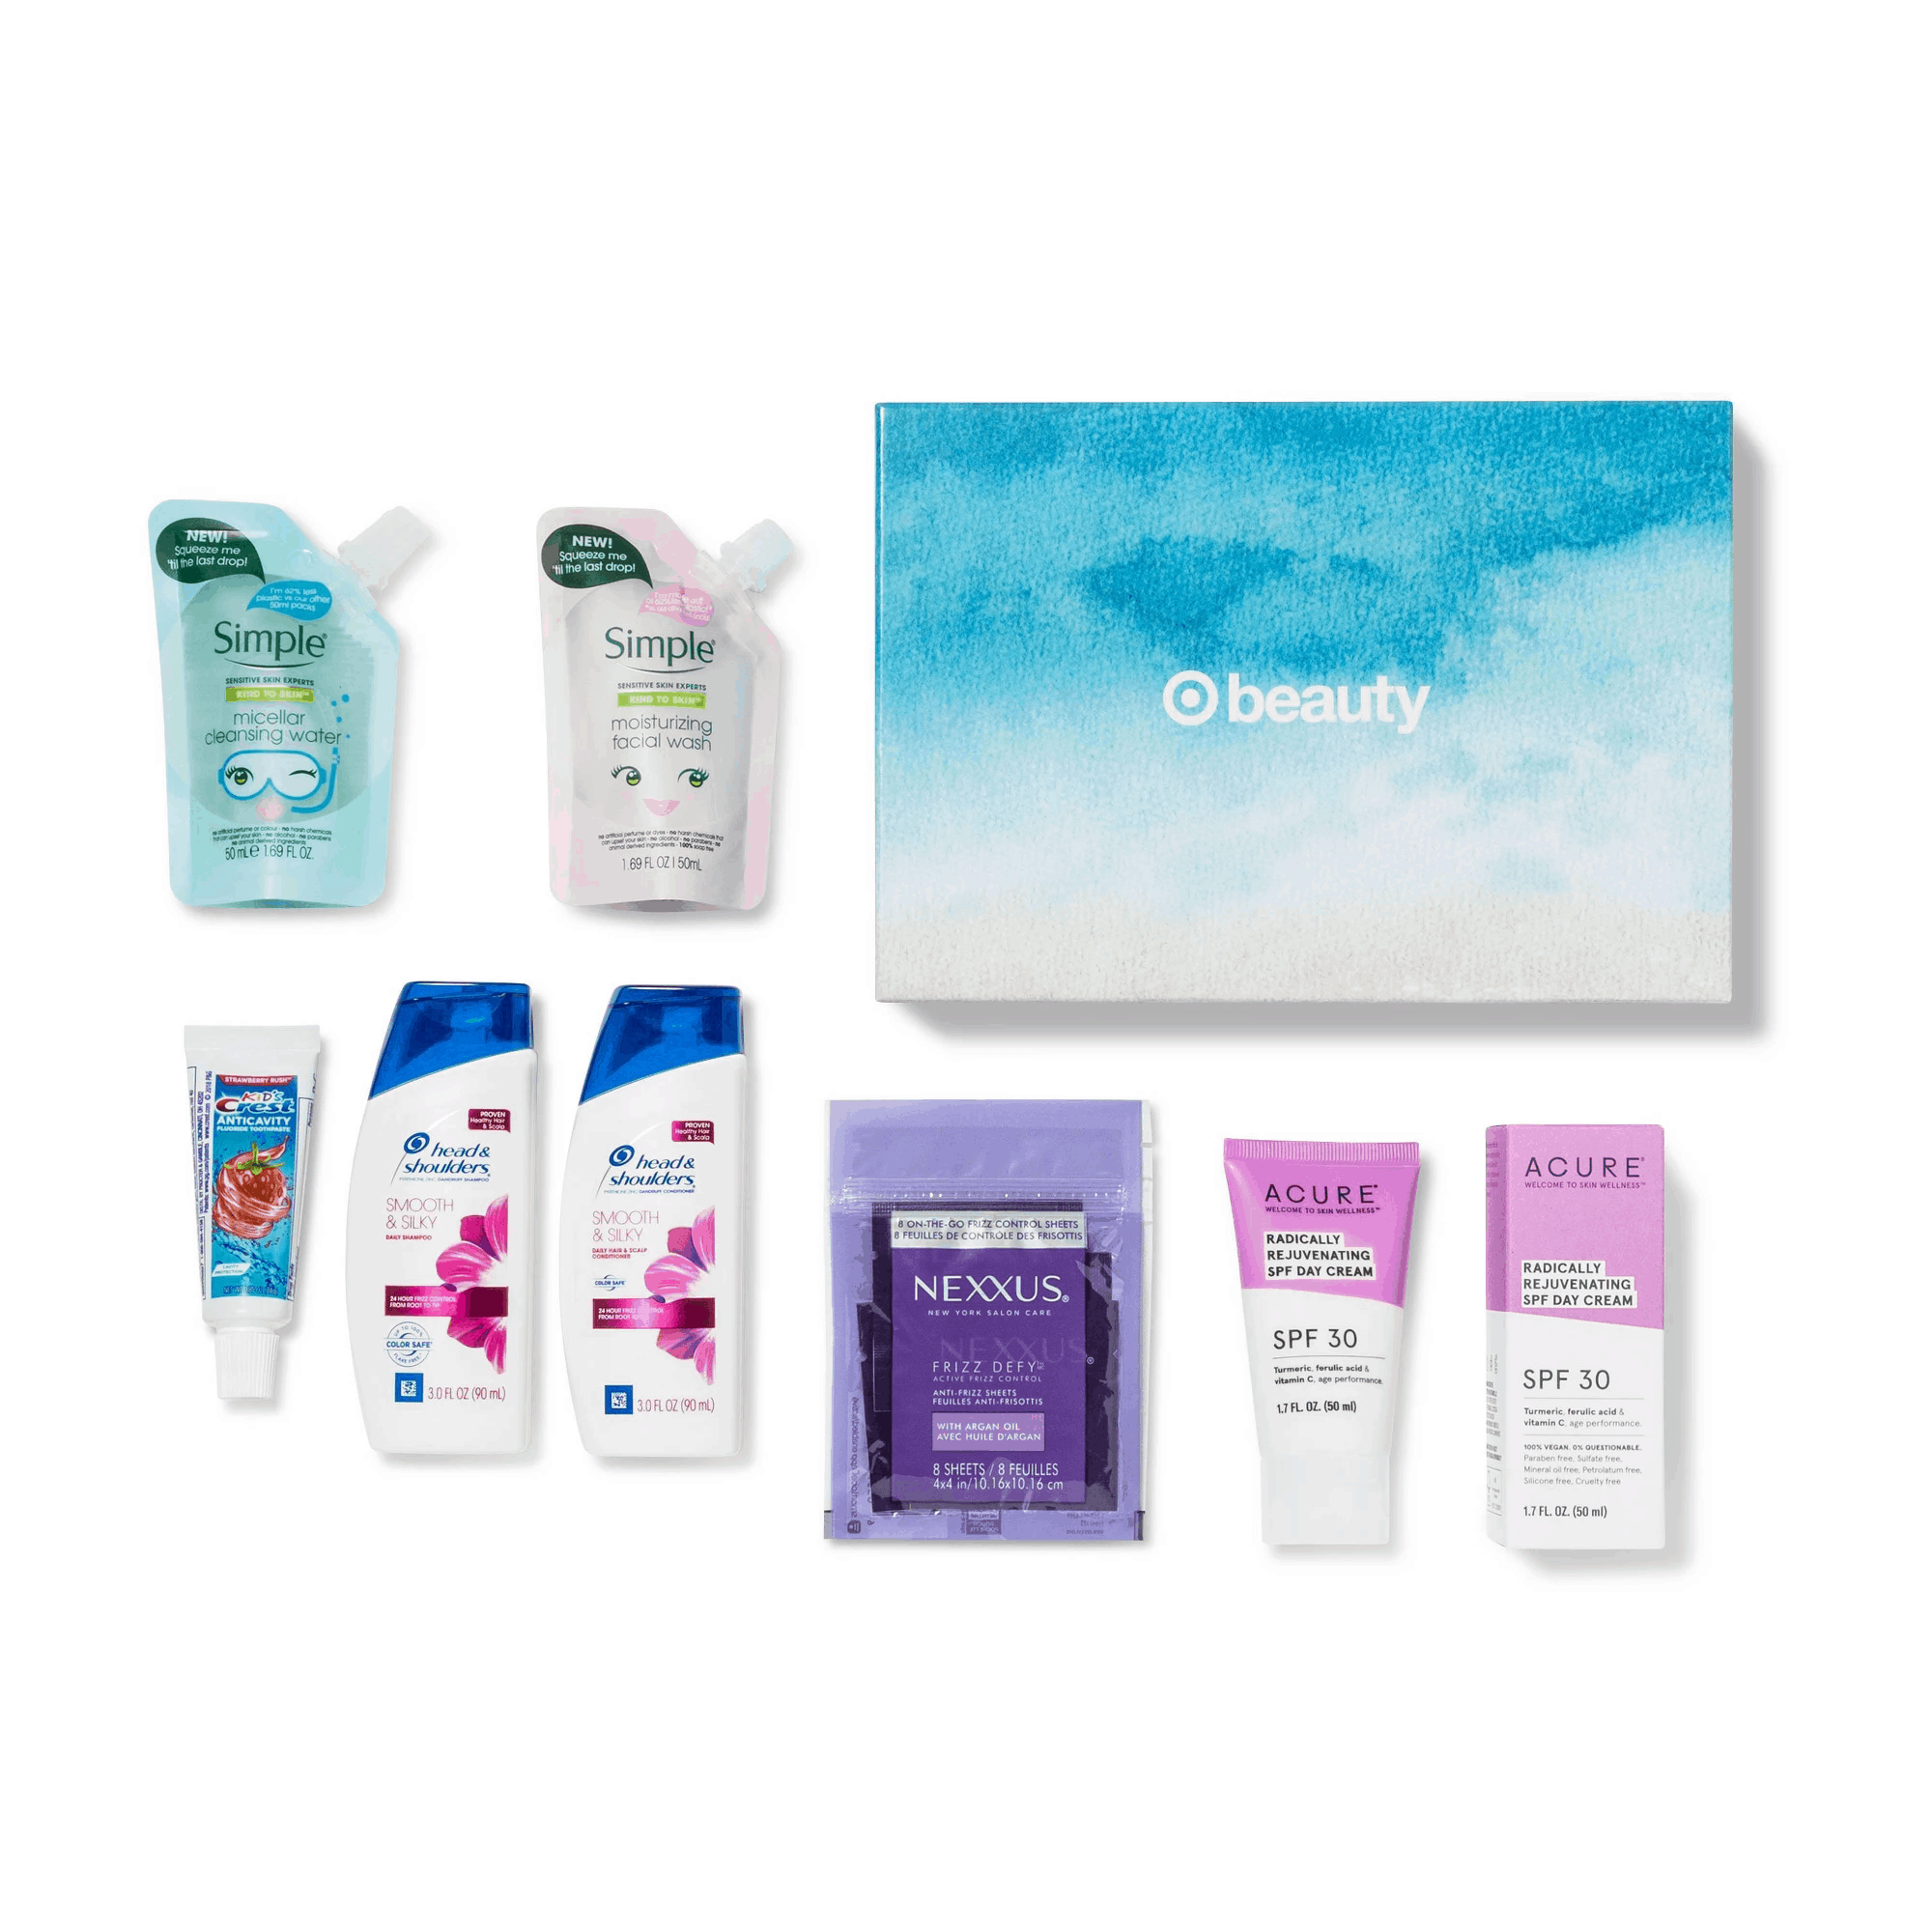 July 2019 Target Beauty Box Available Now – $7 Shipped!